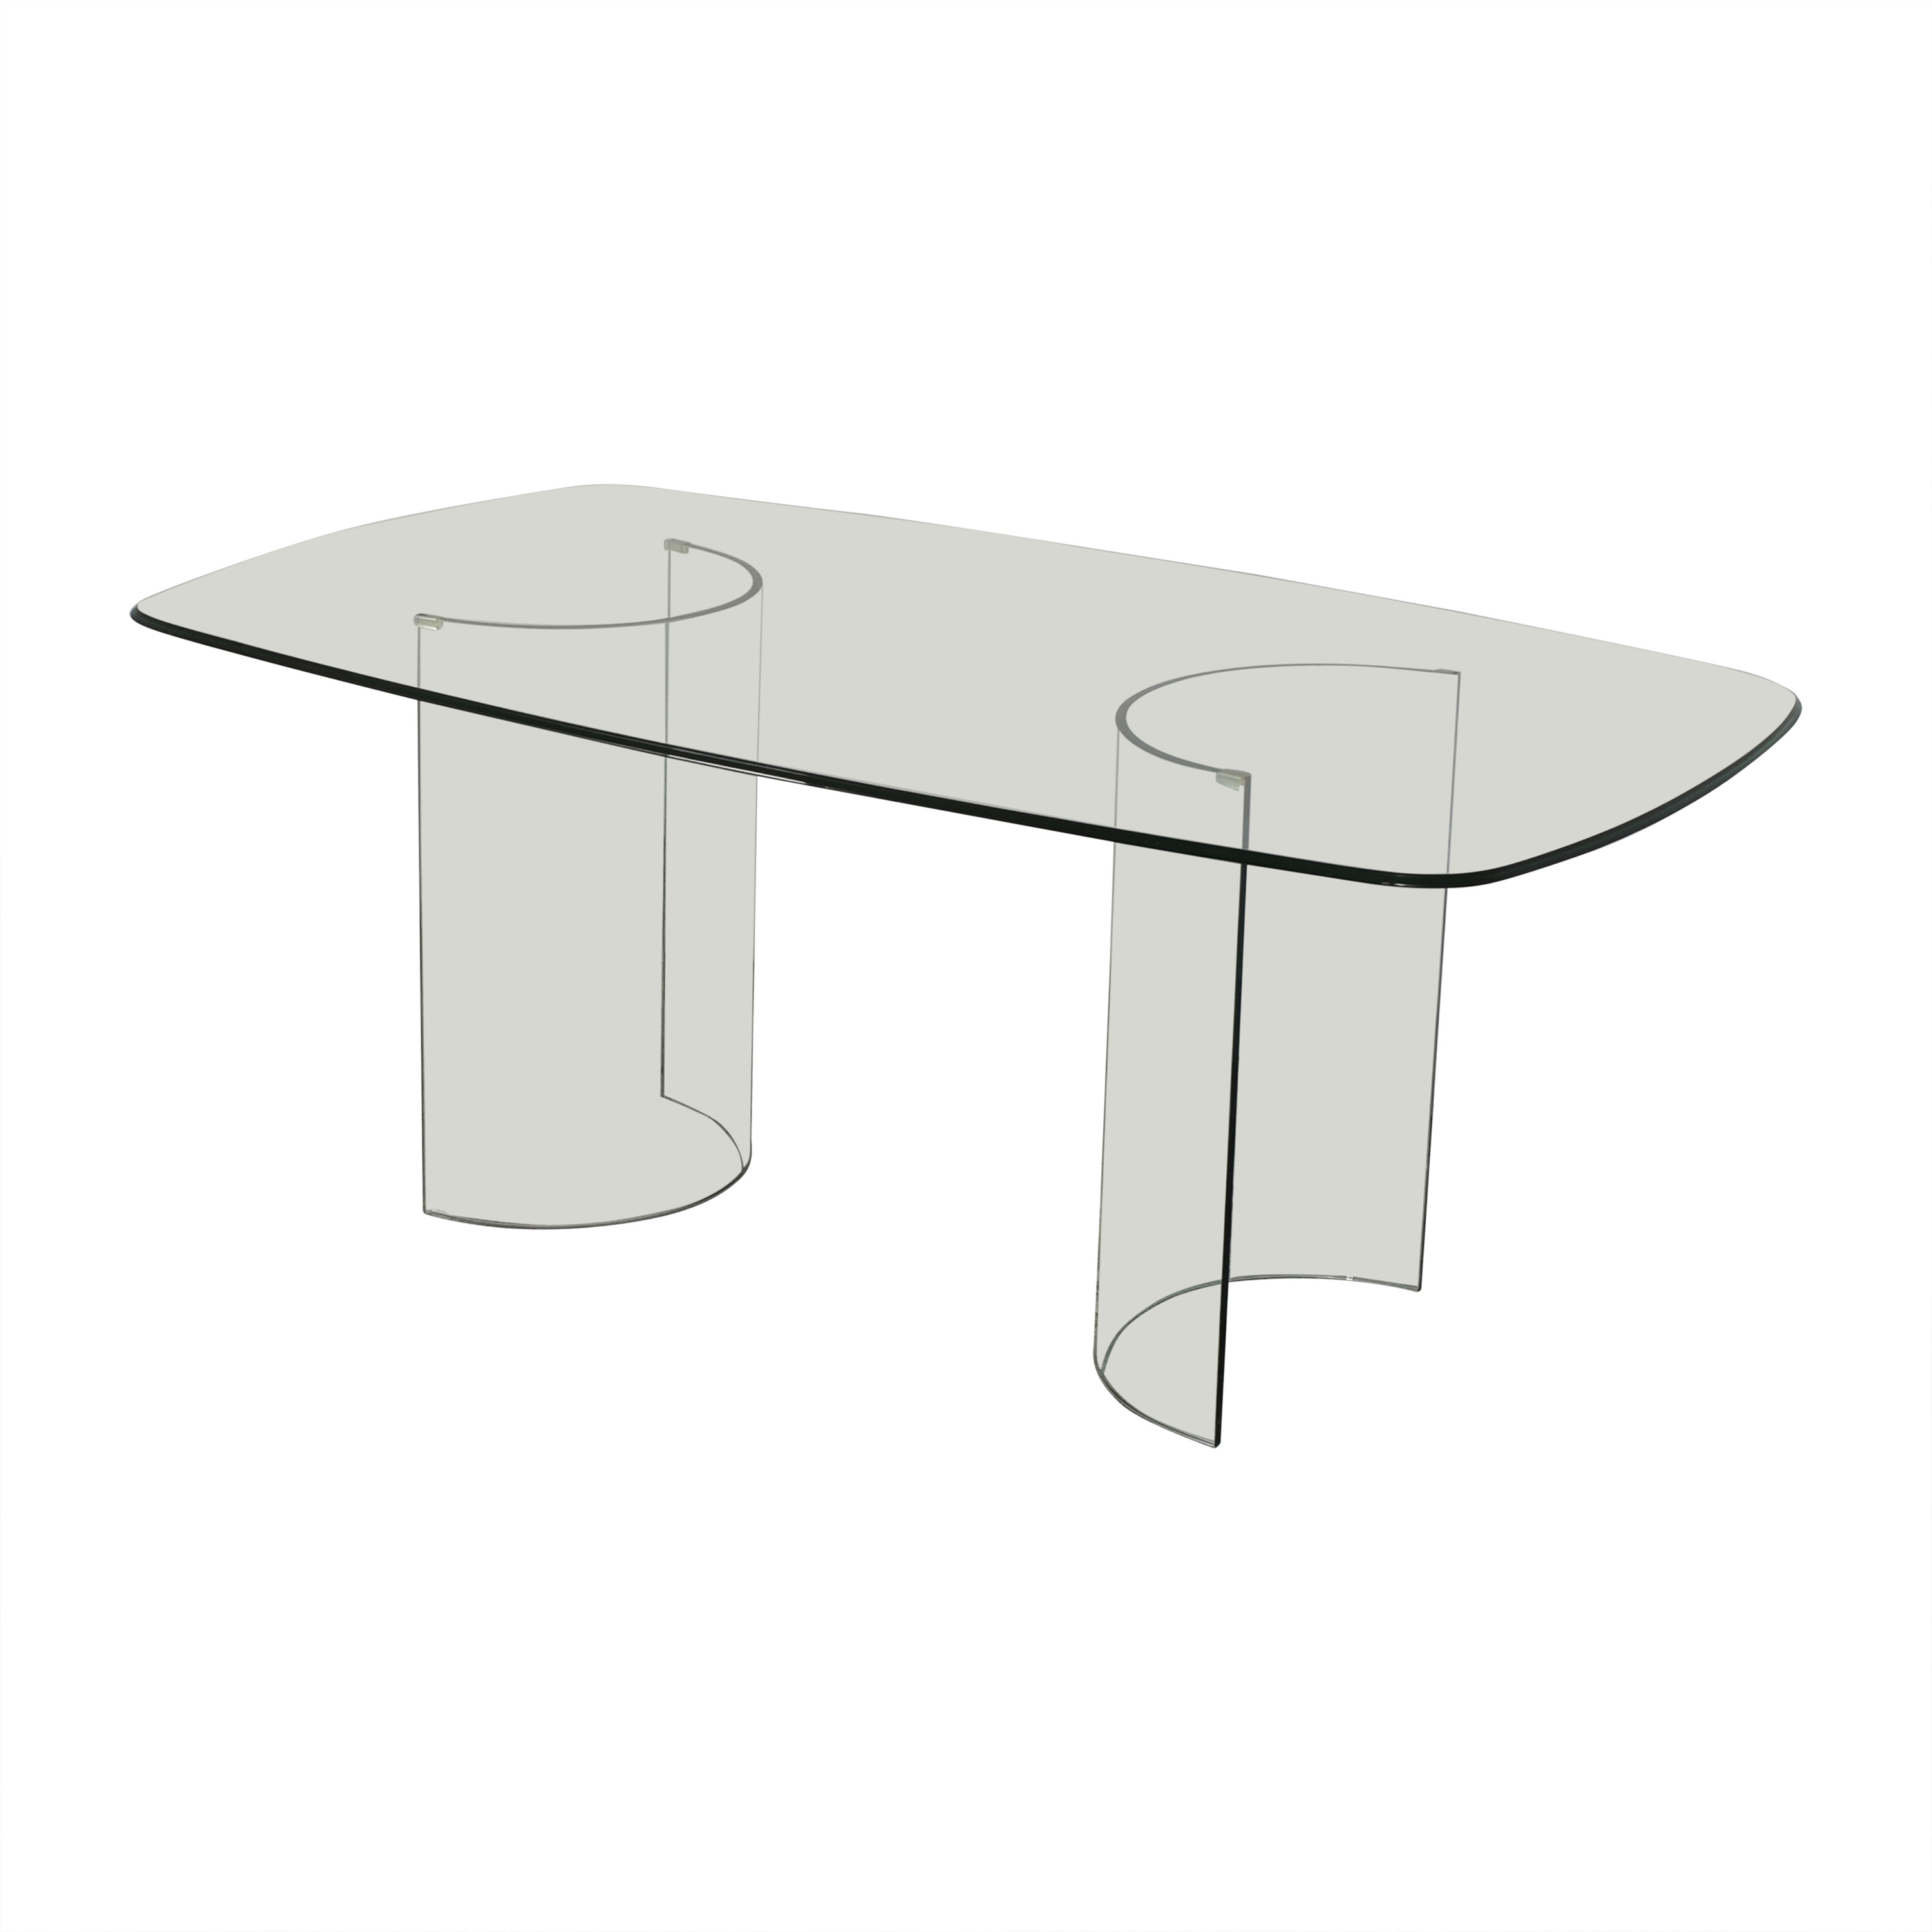 Raymour & Flanigan Raymour & Flanigan Beveled Tempered Glass Dining Table Dinner Tables